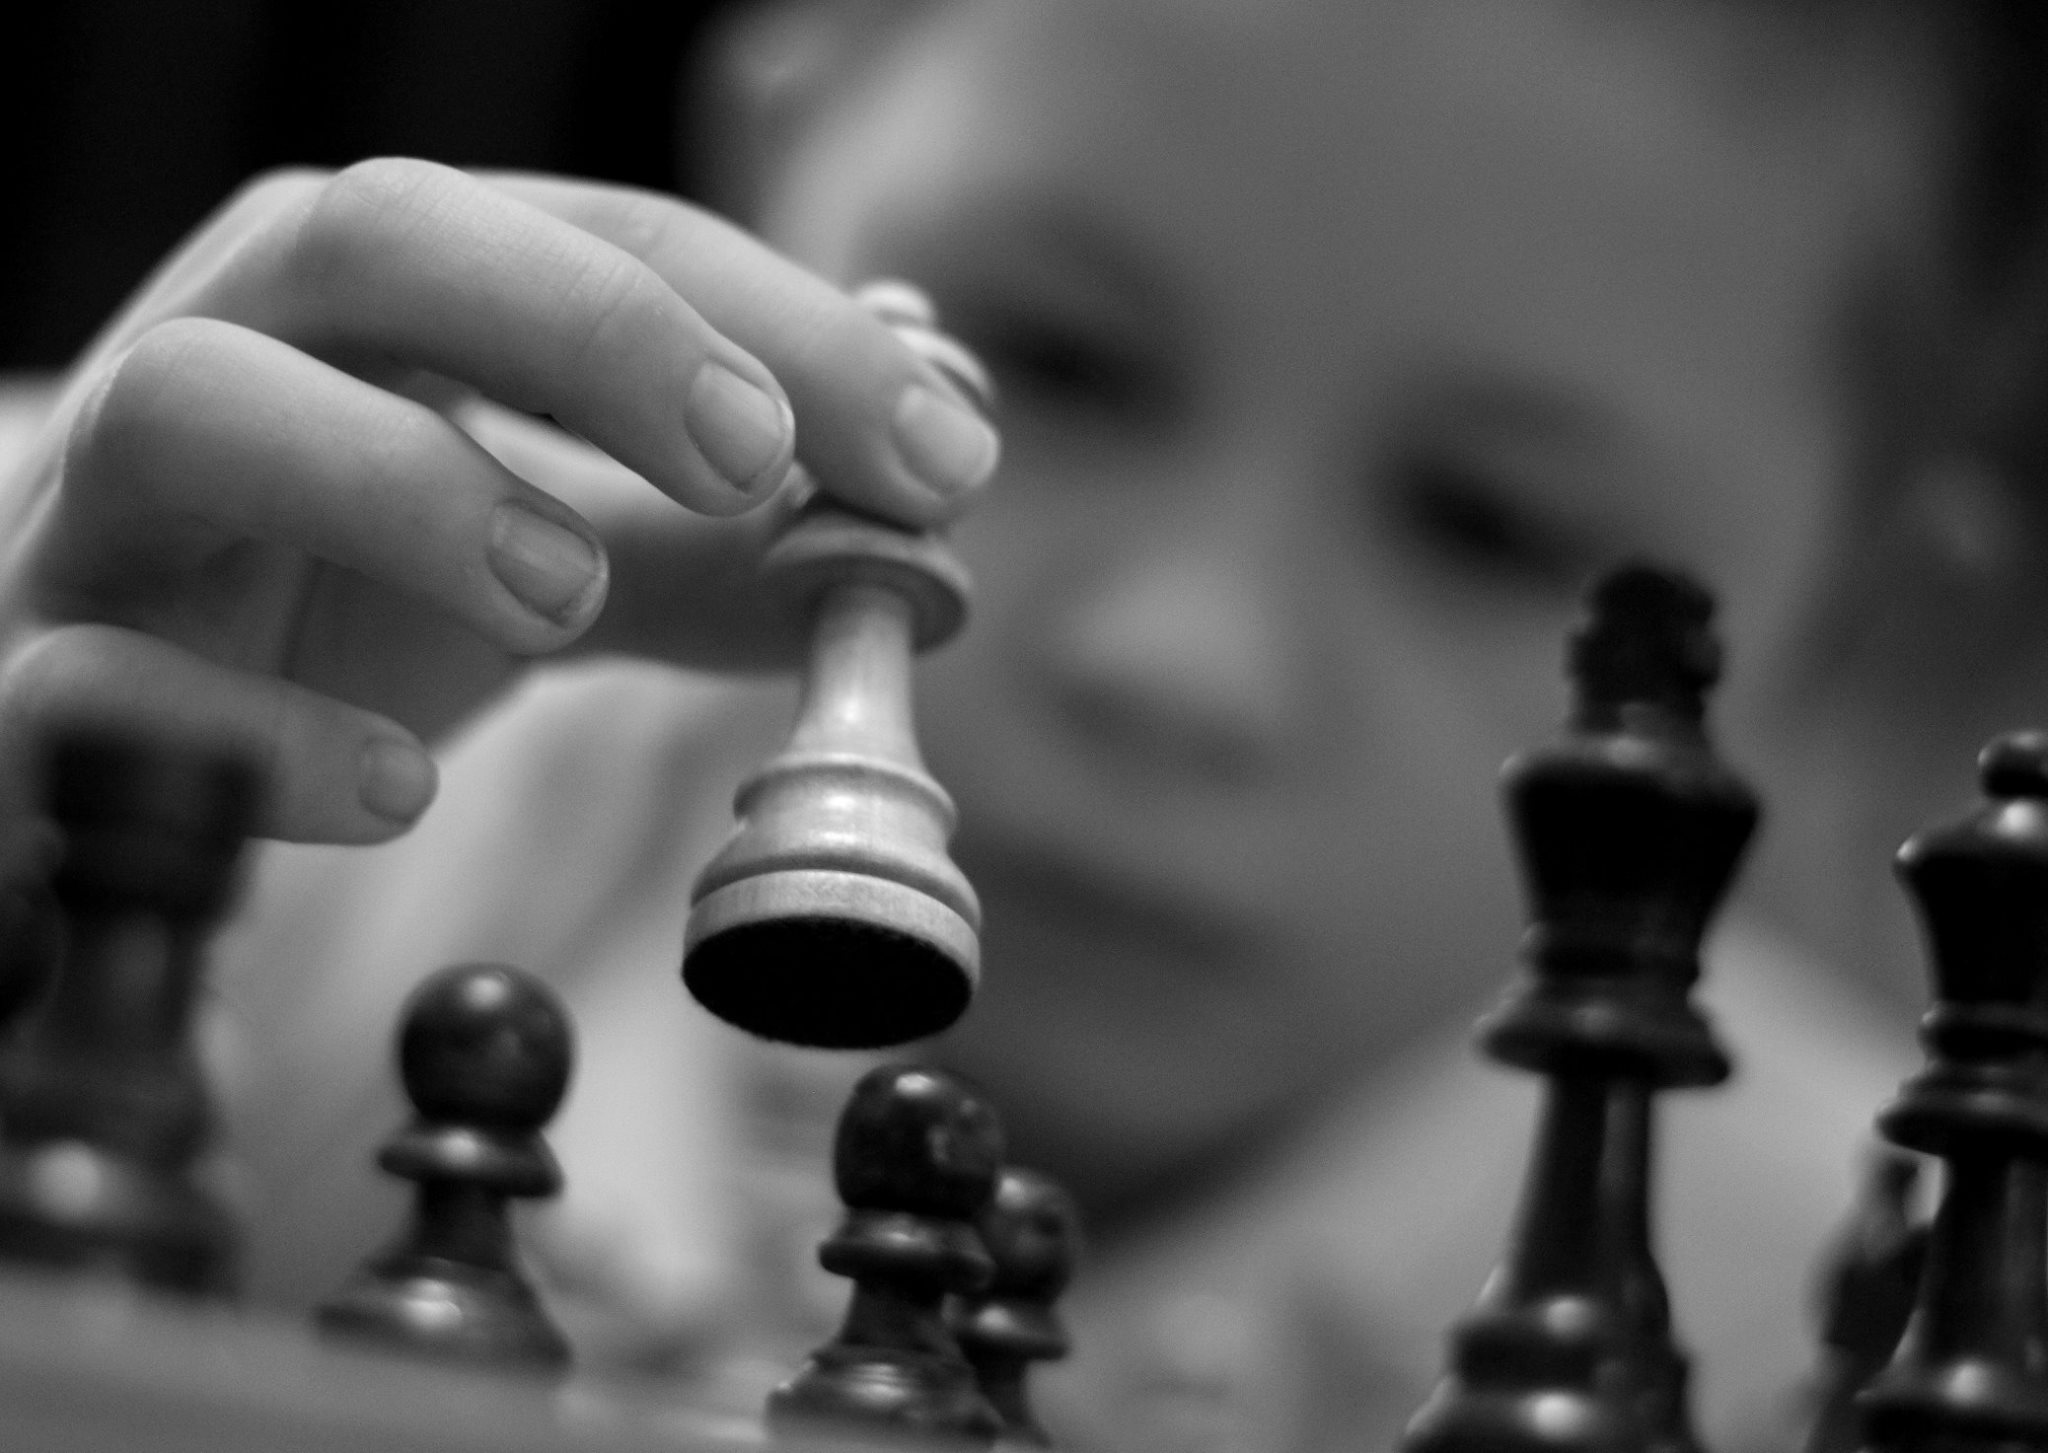 kids-chess